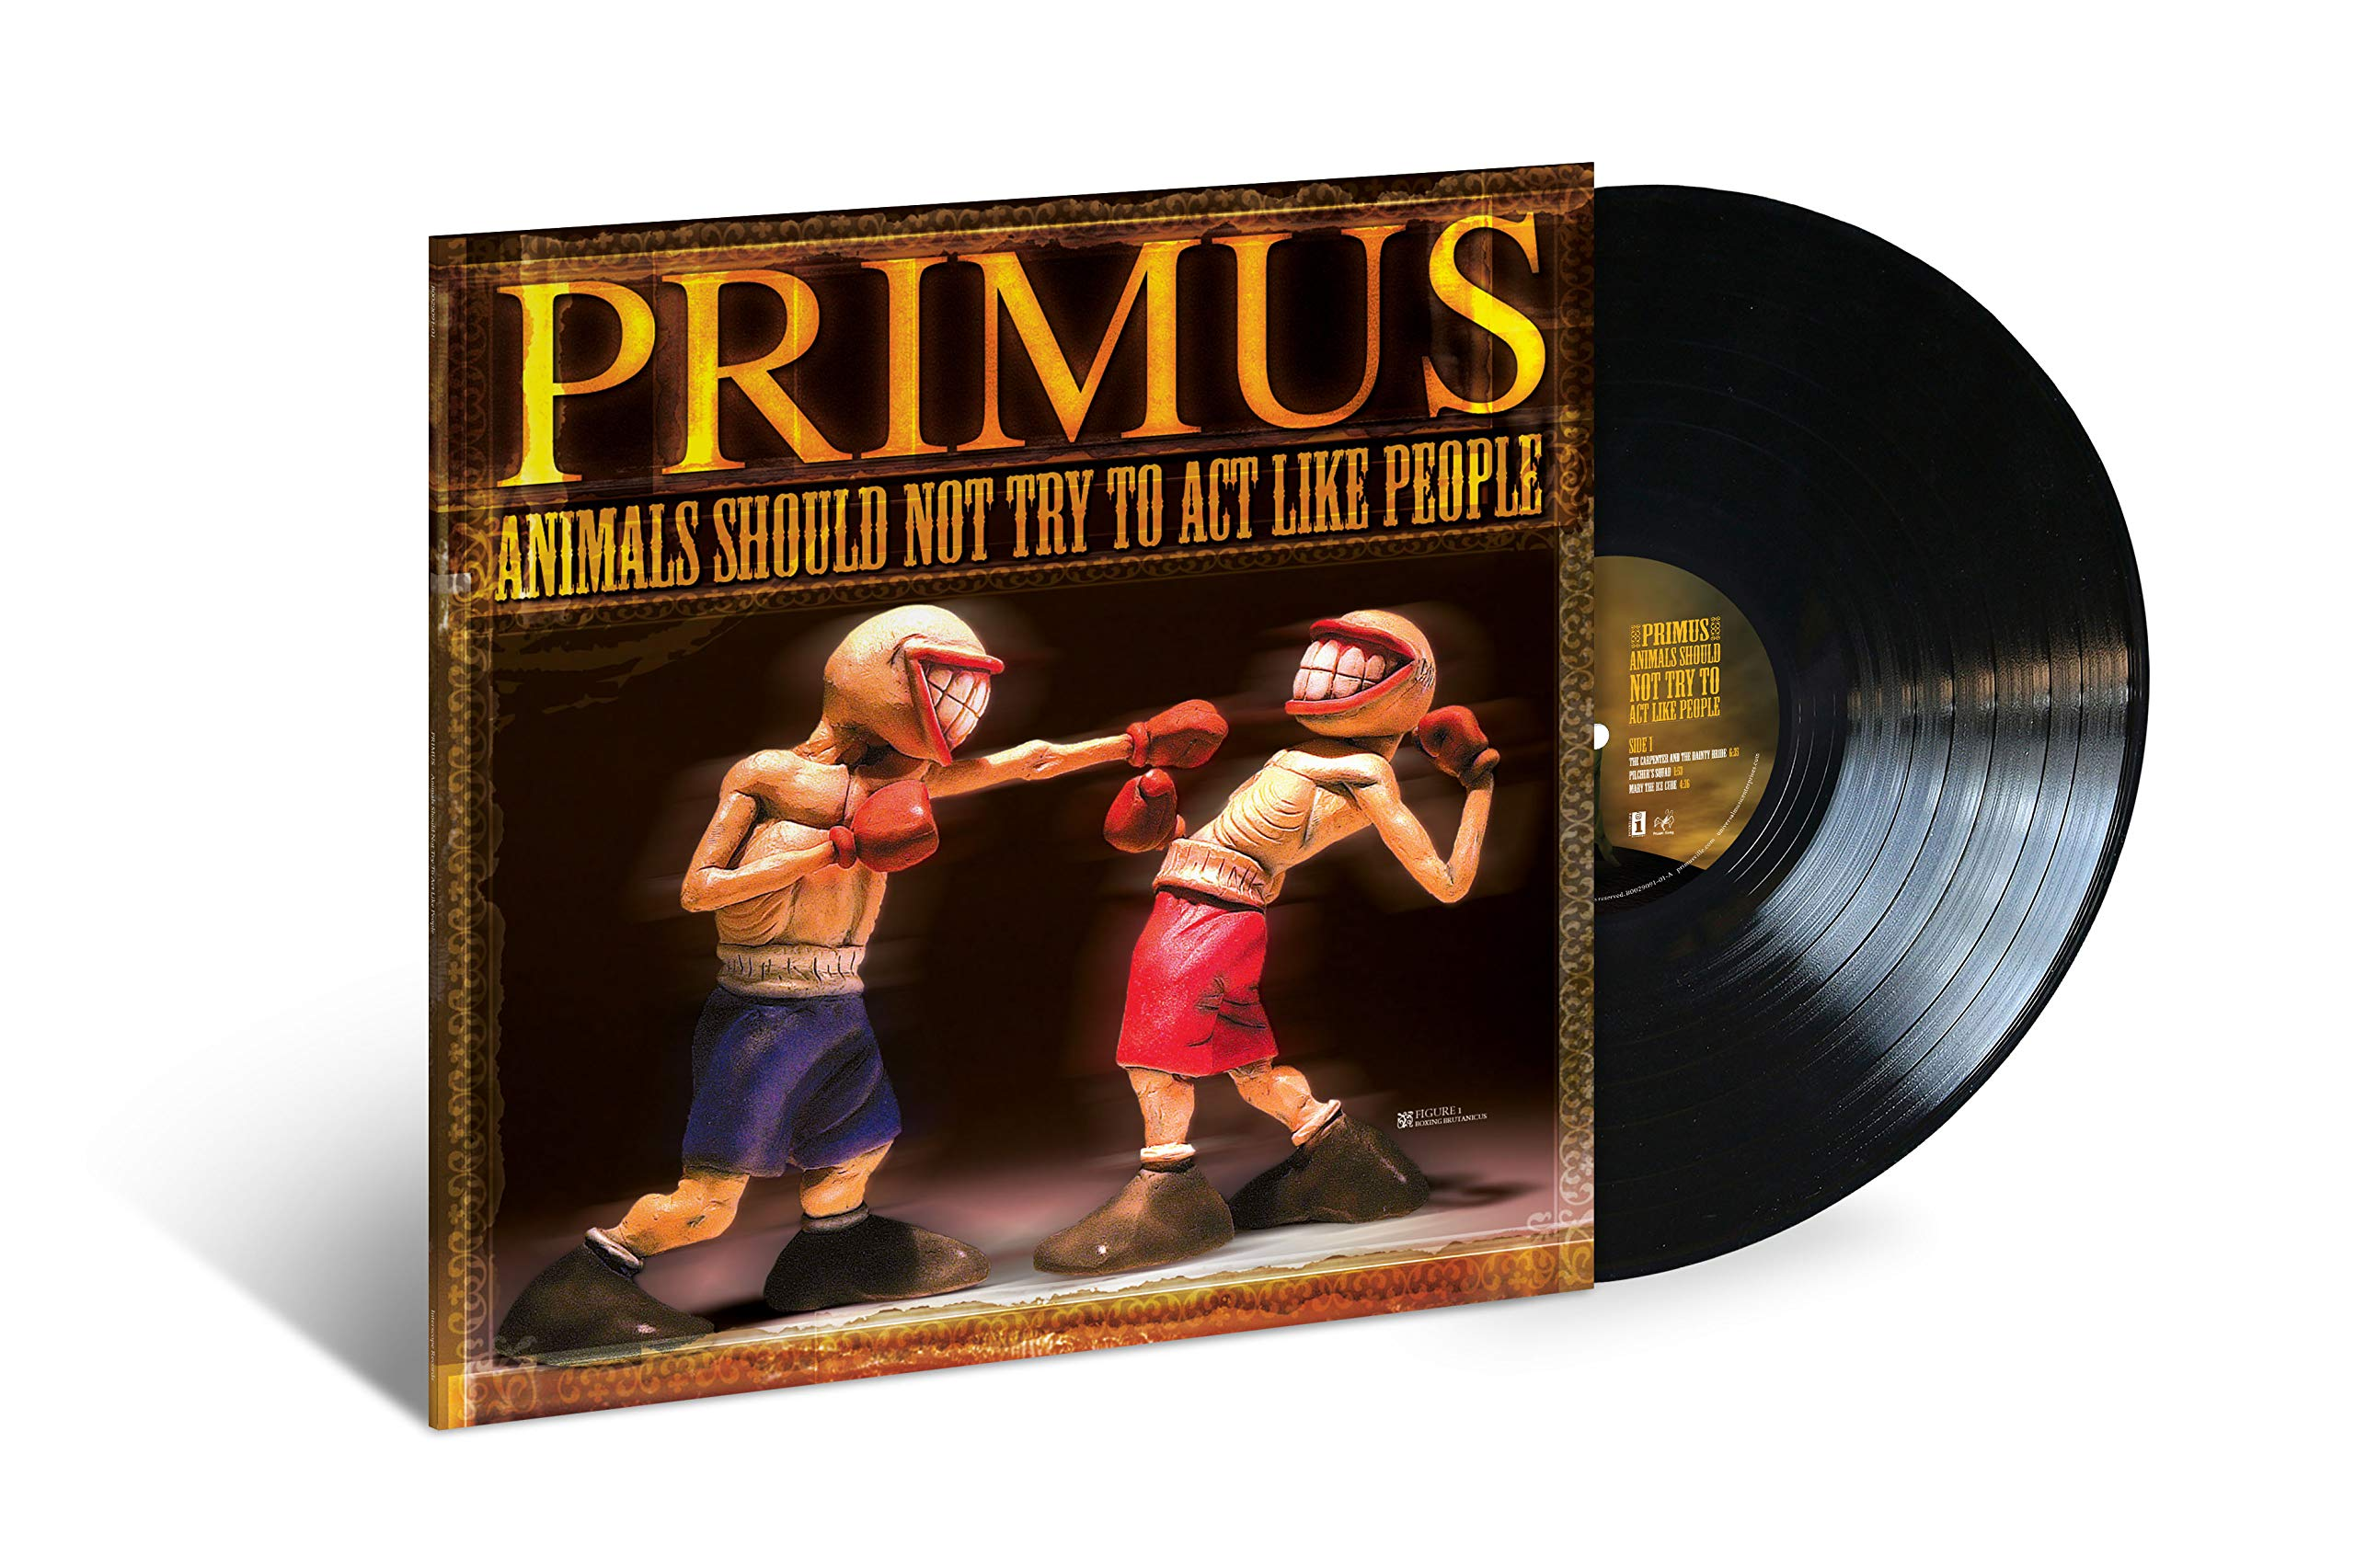 Vinilo : Primus - Animals Should Not Try To Act Like People (Digital Download Card)